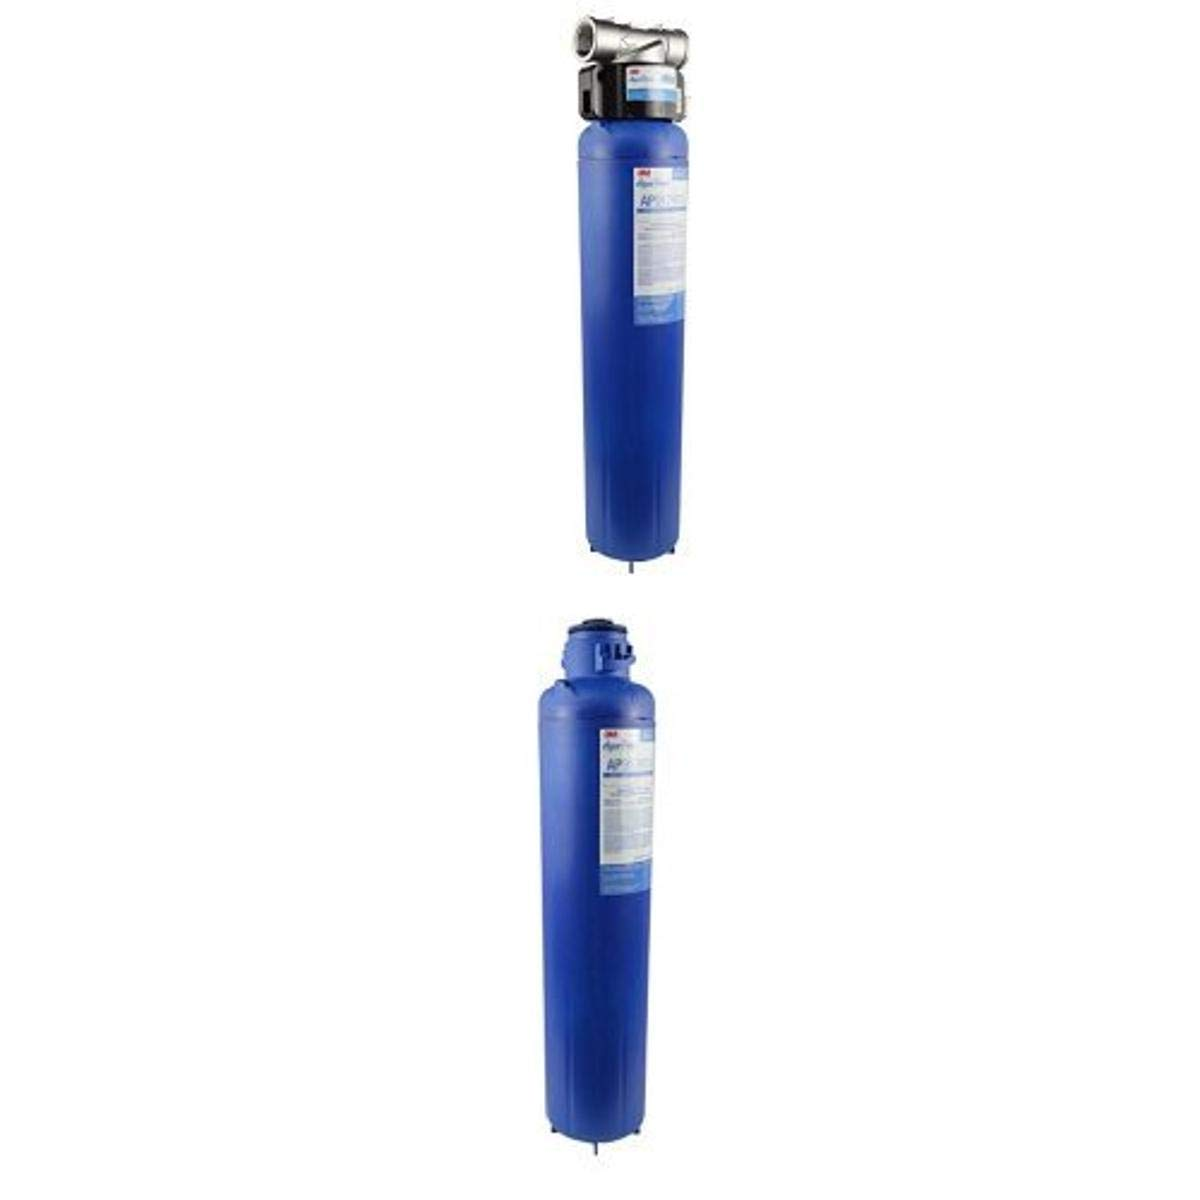 3M Aqua-Pure Whole House Water Filtration System, AP904, with Replacement Filter Catridge Model AP917HD-S